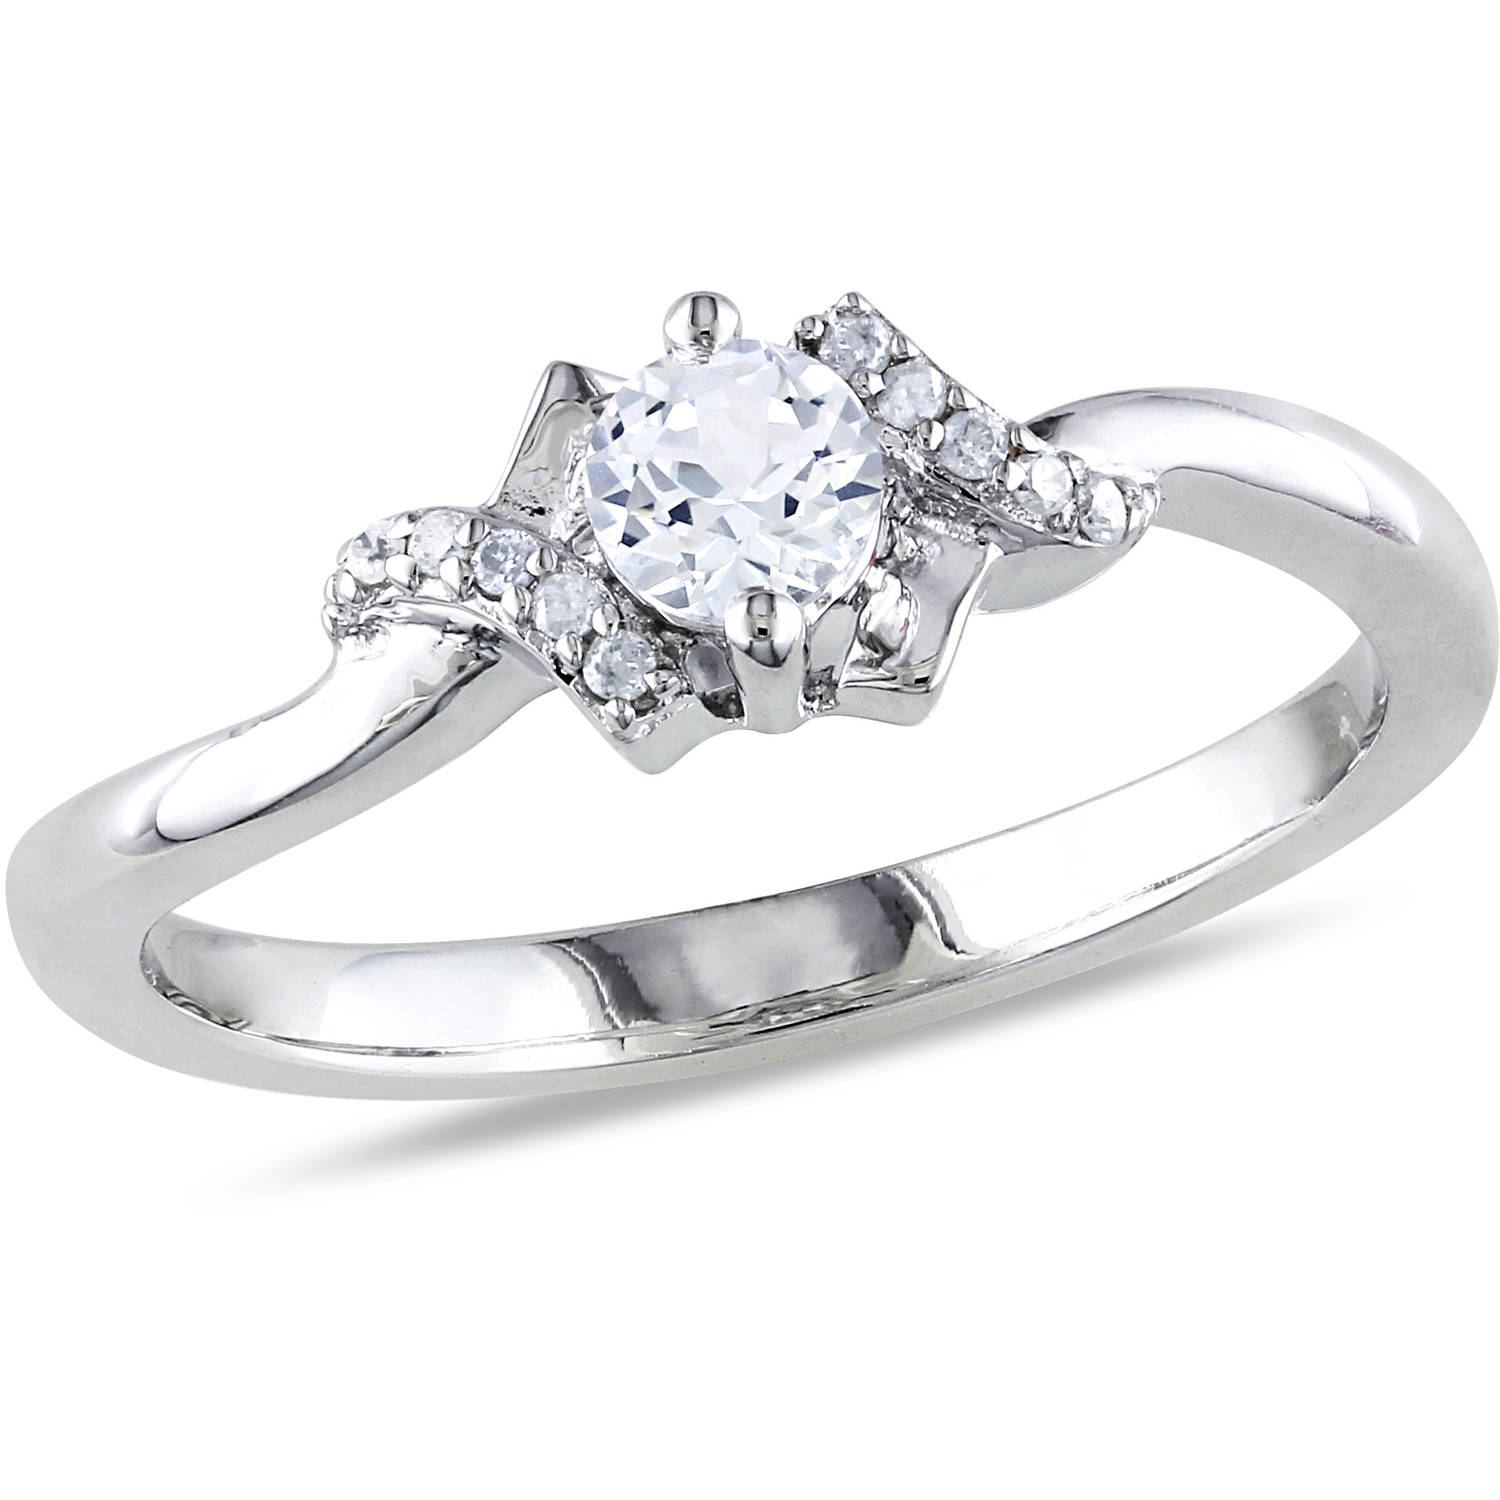 Miabella 1/3 Carat T.G.W. Created White Sapphire and Diamond-Accent Sterling Silver Promise Ring